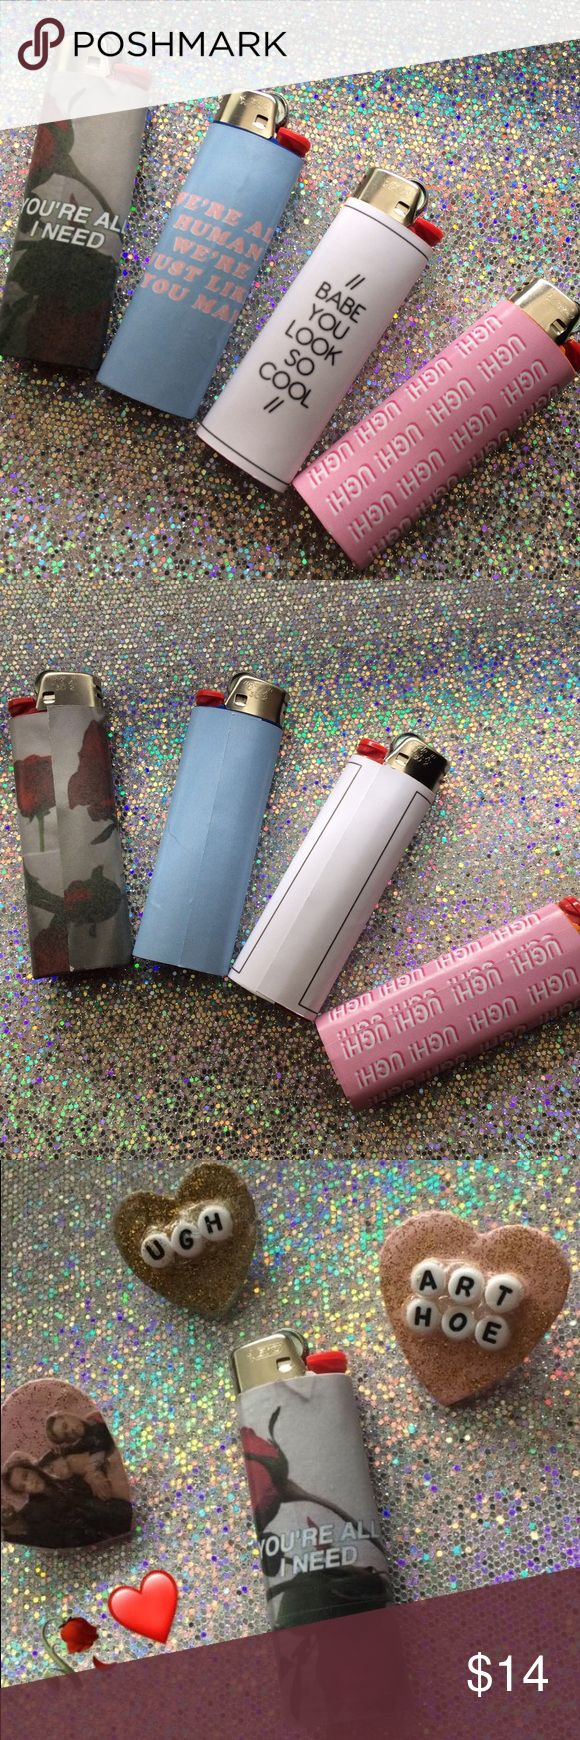 ✨ The 1975 Inspired Lighters ✨ the lighters available: Ugh! You're all I need Babe you look so cool We're all human we're just like u man  ♡ these are bic lighters & these vinyl stickers are made good to be on the lighter good so they don't melt or come off.  ♡ I do not give refunds or cancel customs, once the item is shipped i can't cancel.   ♡ if an item is damaged or lost, if the sticker comes off let me know and show proof!  ♡ PLEASE KNOW I FOUND ALL MY STUFF ON TUMBLR OR GOOGLE…